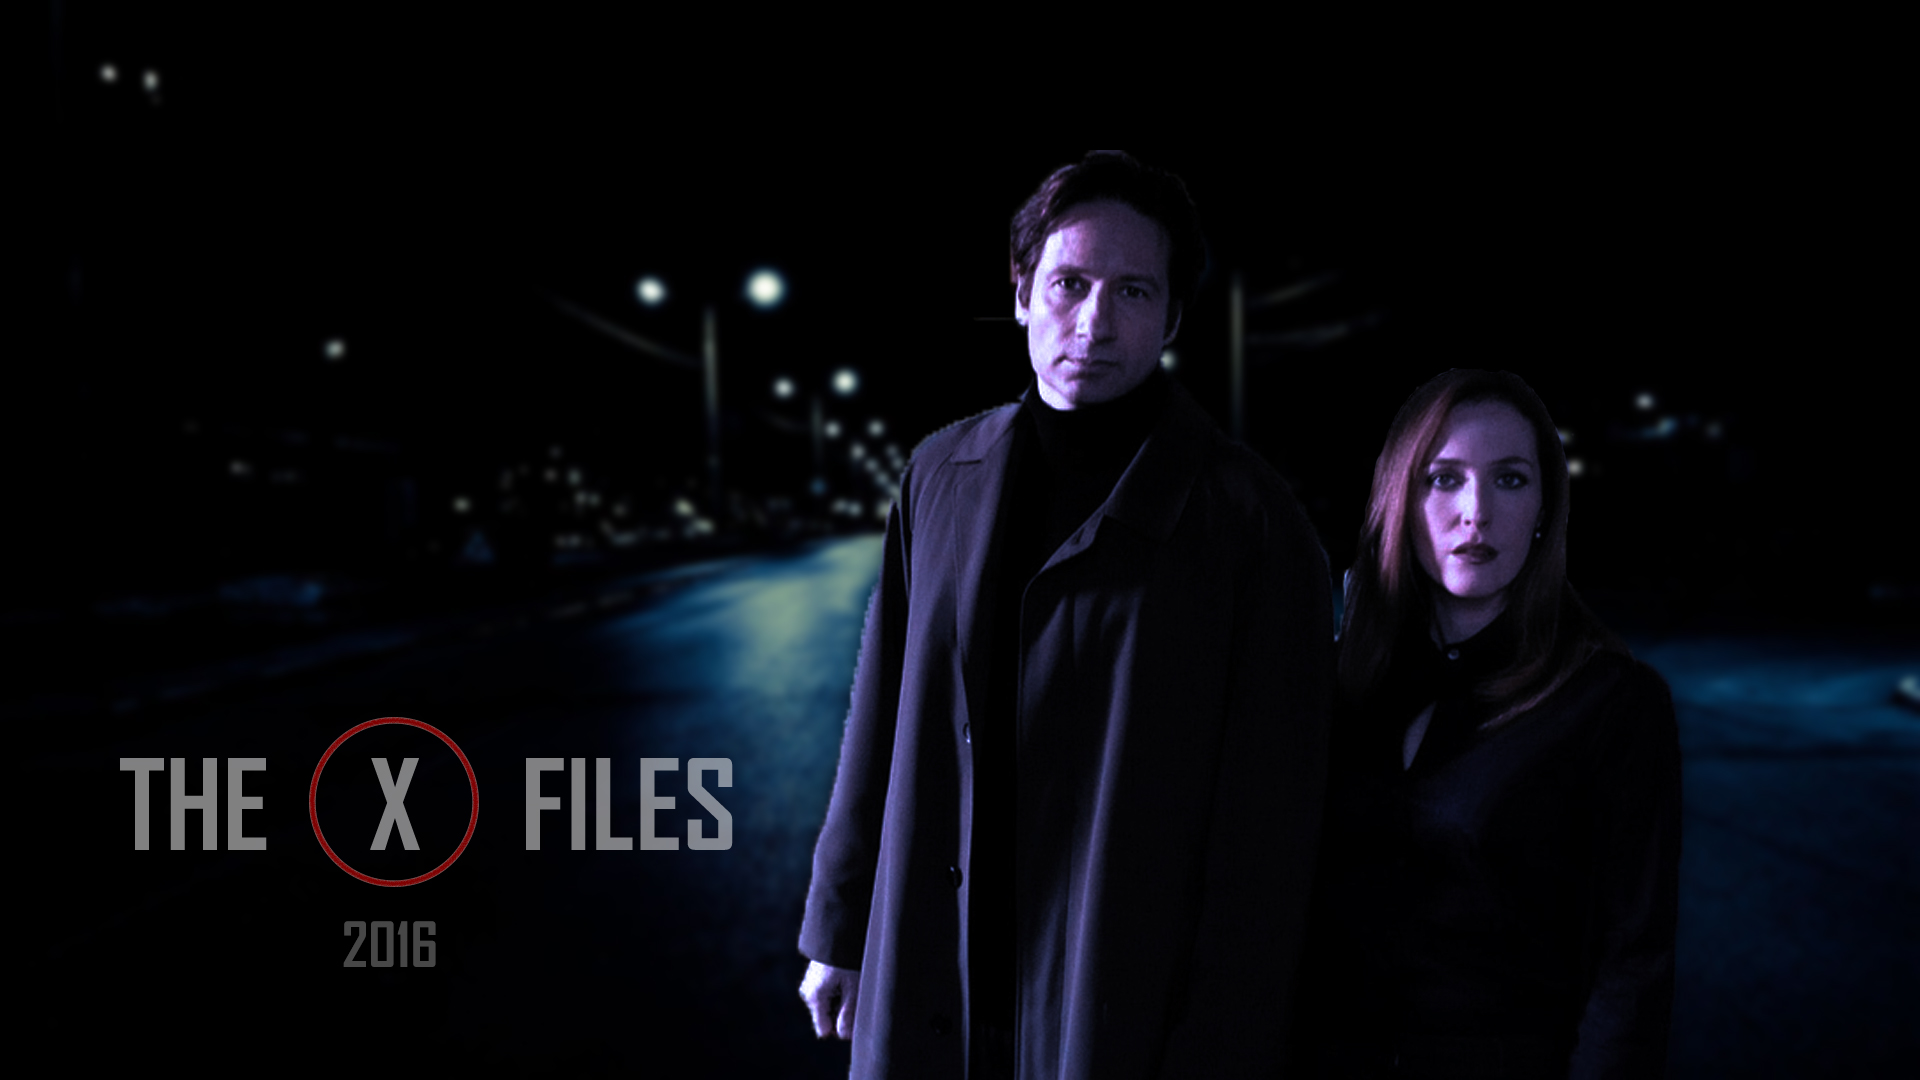 The X Files 2016 Wallpapers High Resolution and Quality 1920x1080